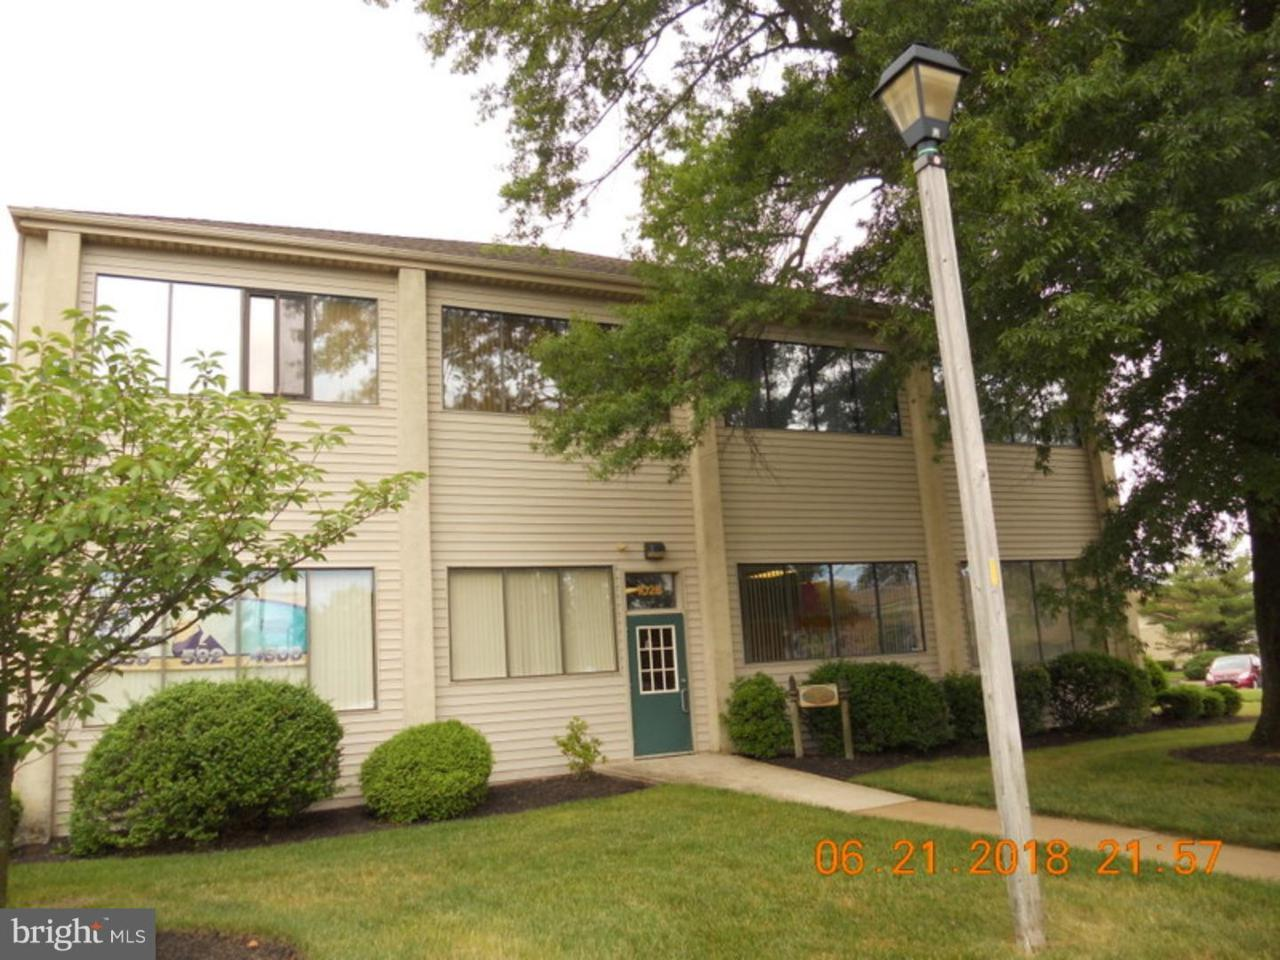 202B Kings Way W - Photo 1